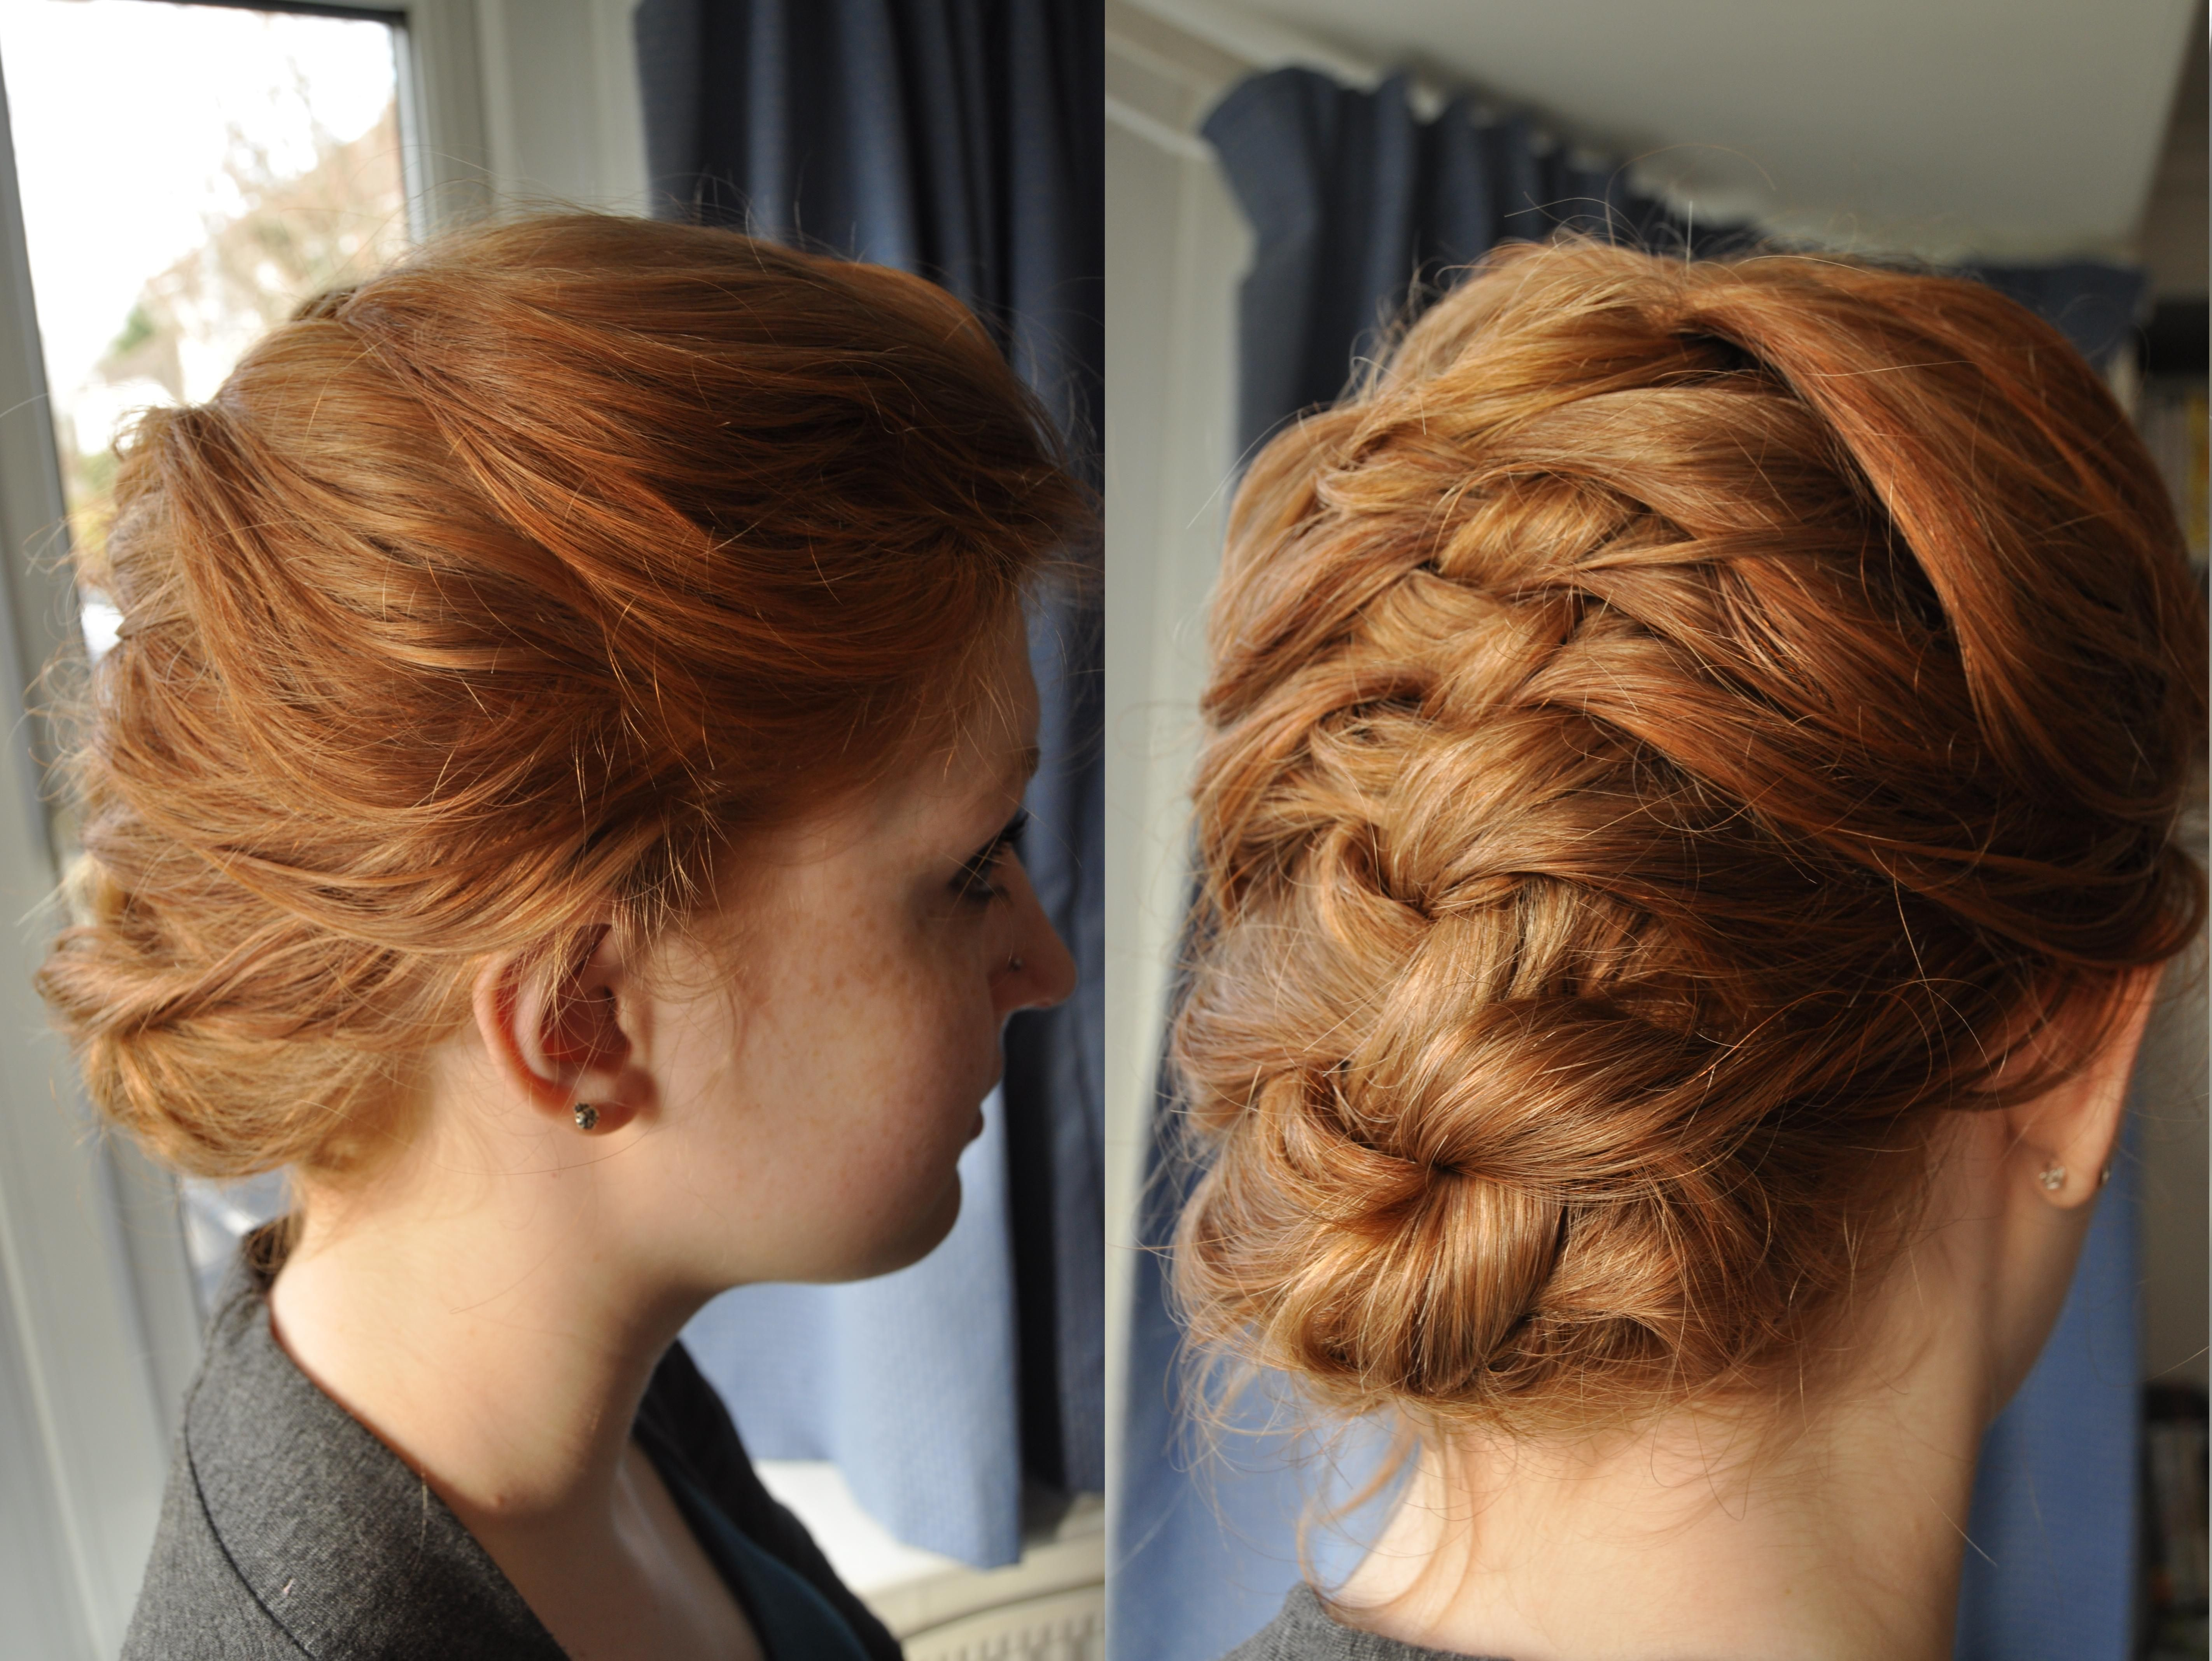 My First Try At A French Braid On My Sister S Hair Braided Updo For Short Hair Short Wedding Hair Braids For Short Hair